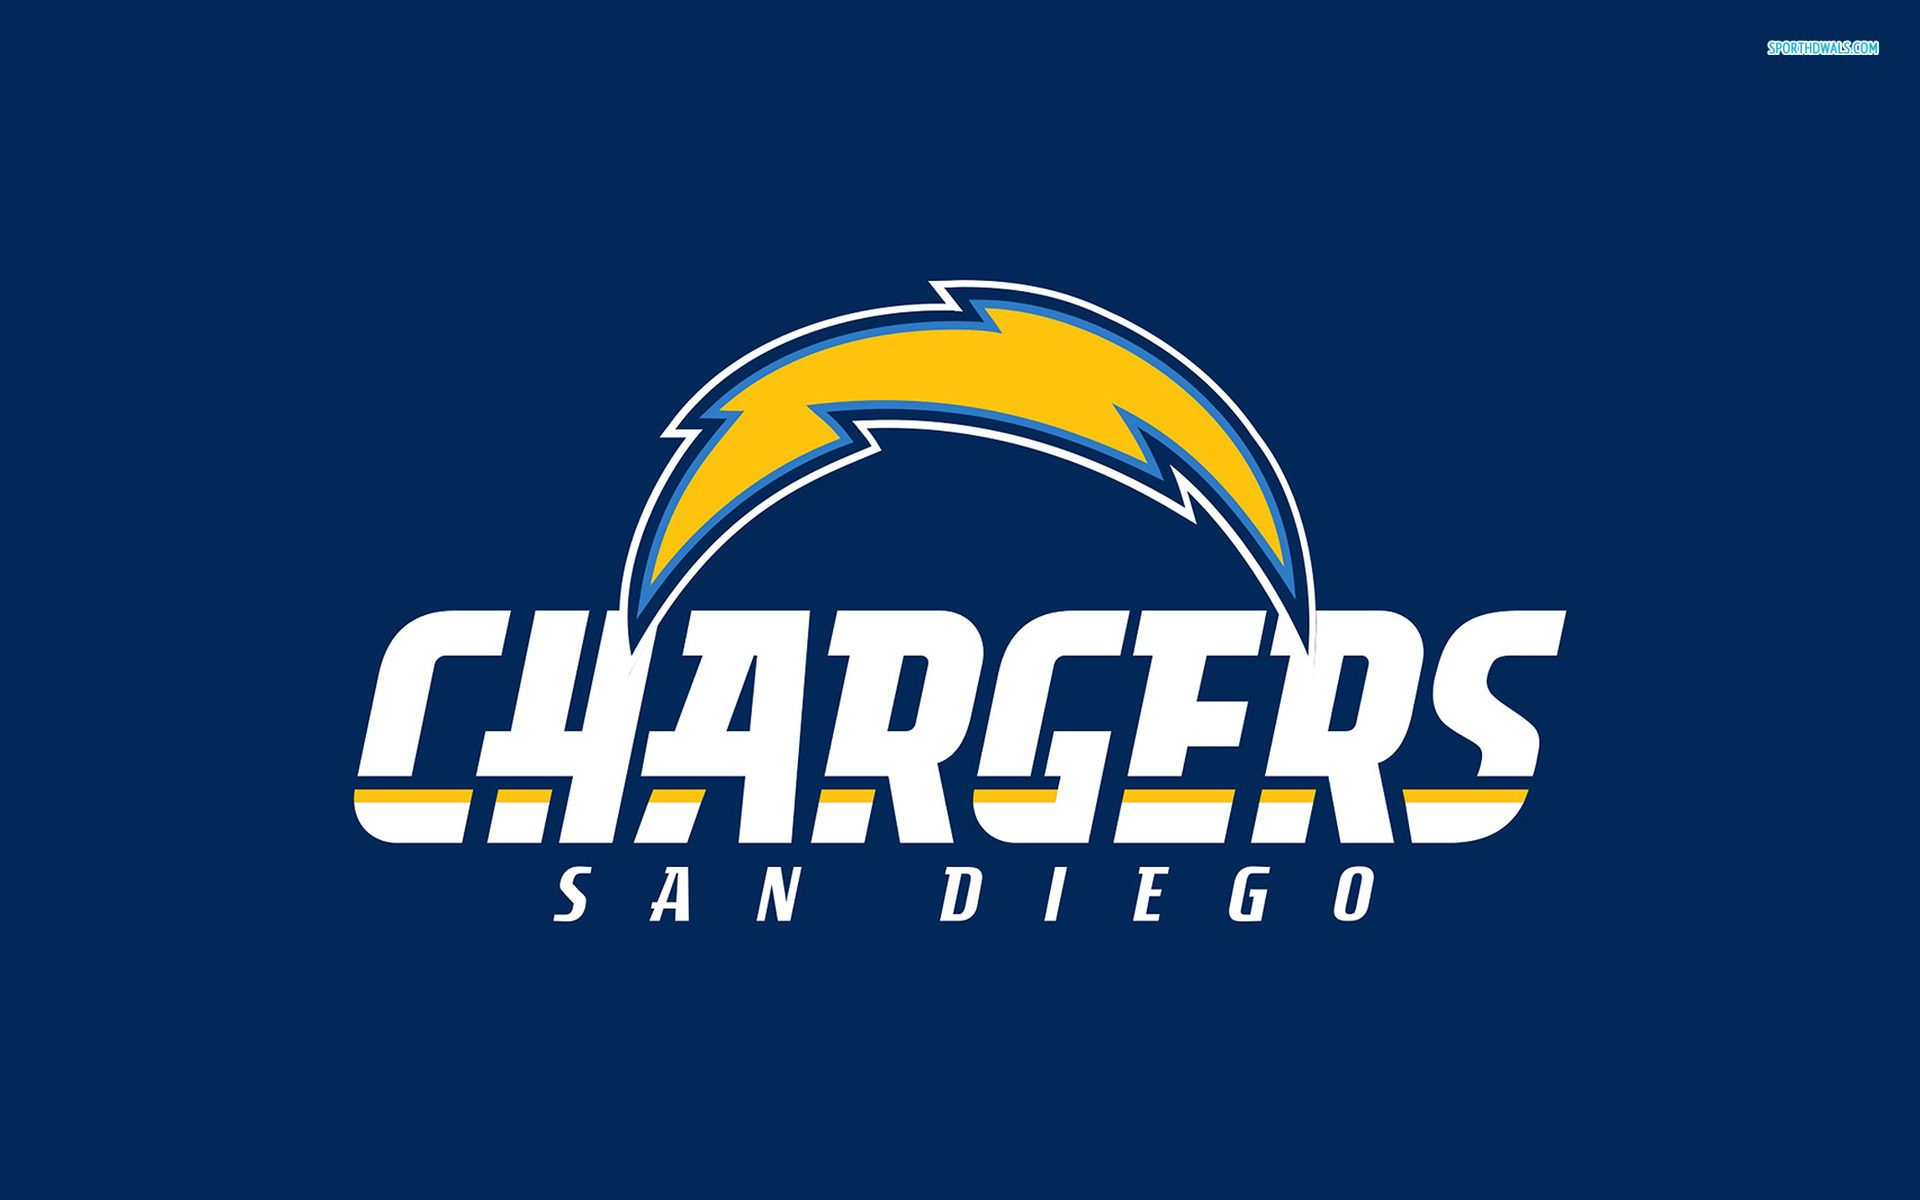 Chargers Wallpaper San Diego Chargers Wallpaper 1920x1200 San